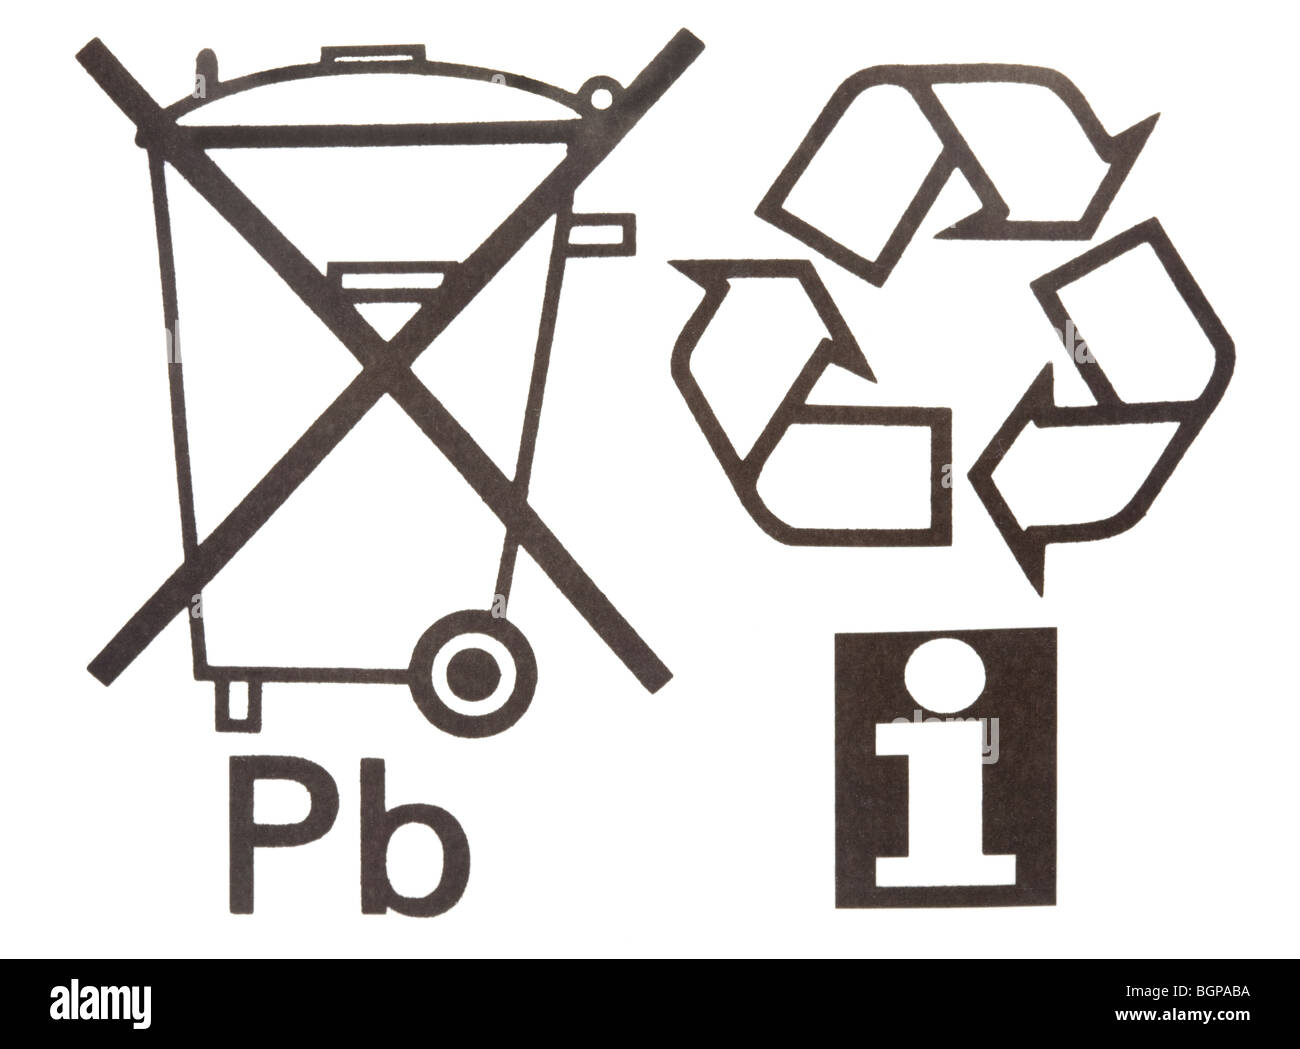 Recycling symbols on product packaging stock photo royalty free recycling symbols on product packaging biocorpaavc